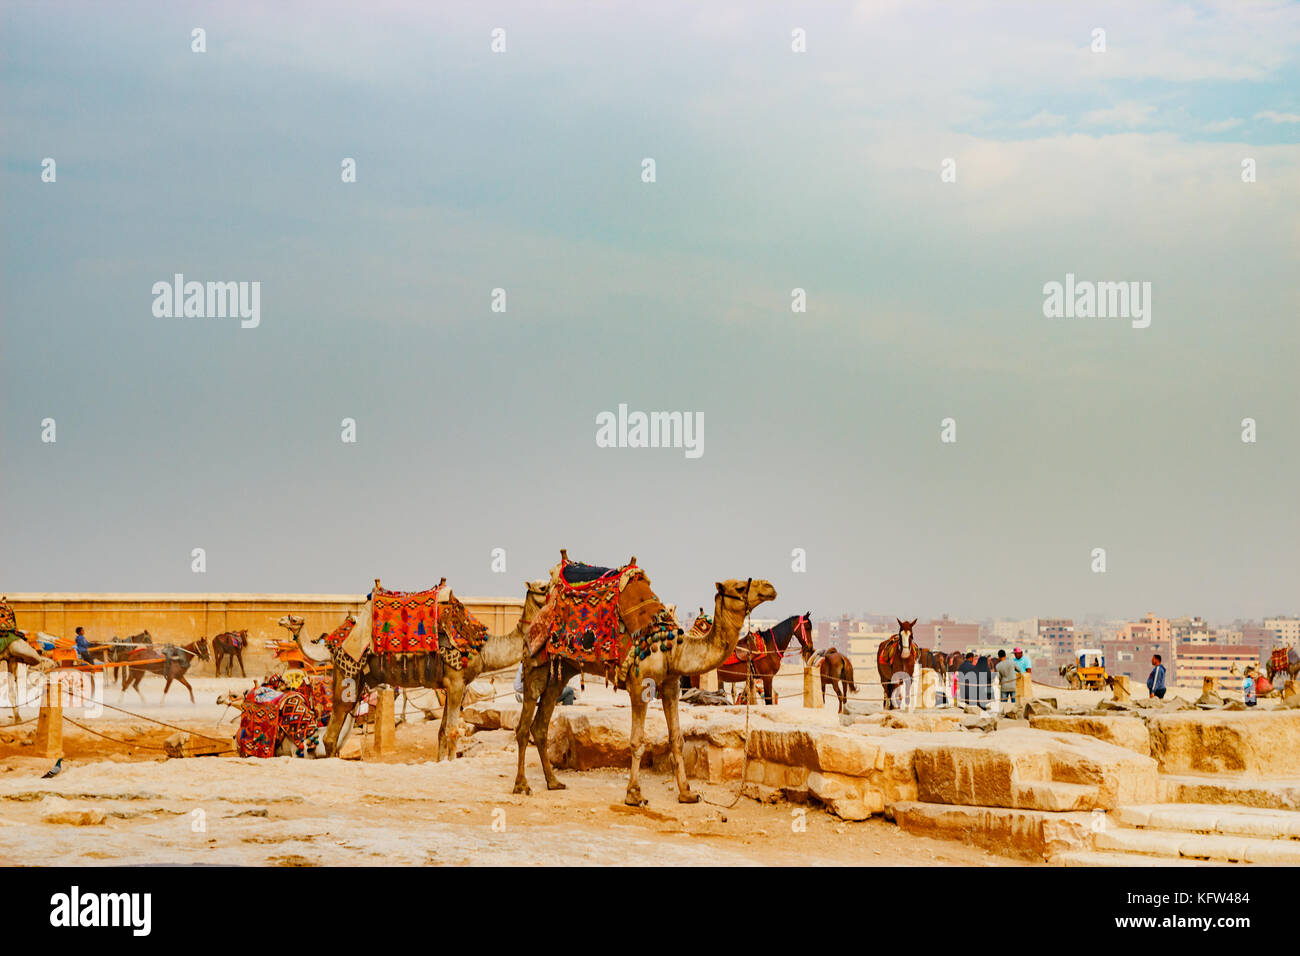 Camel près de l'ancienne pyramide au Caire, Egypte Photo Stock